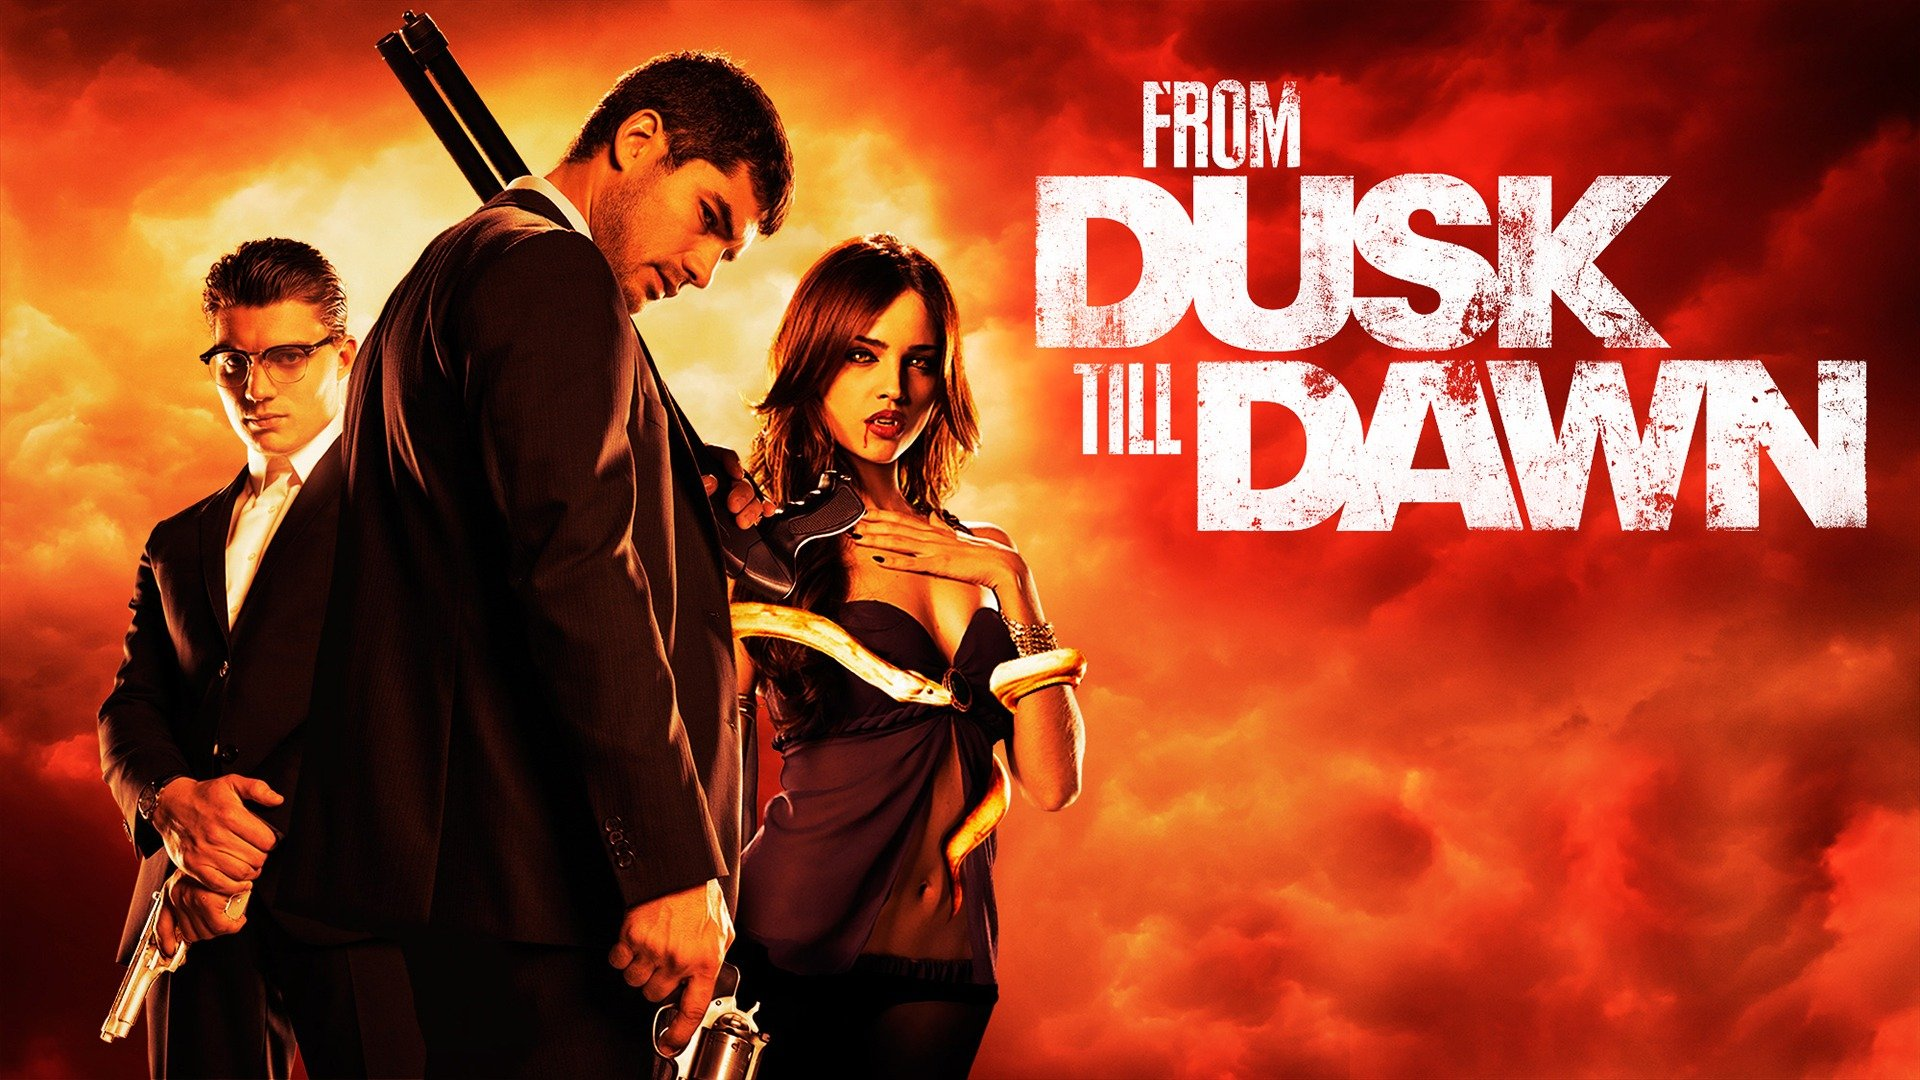 Stiahni si Seriál     Od soumraku do usvitu / From Dusk Till Dawn: The Series - 1. serie (CZ/EN)[1080p] = CSFD 65%